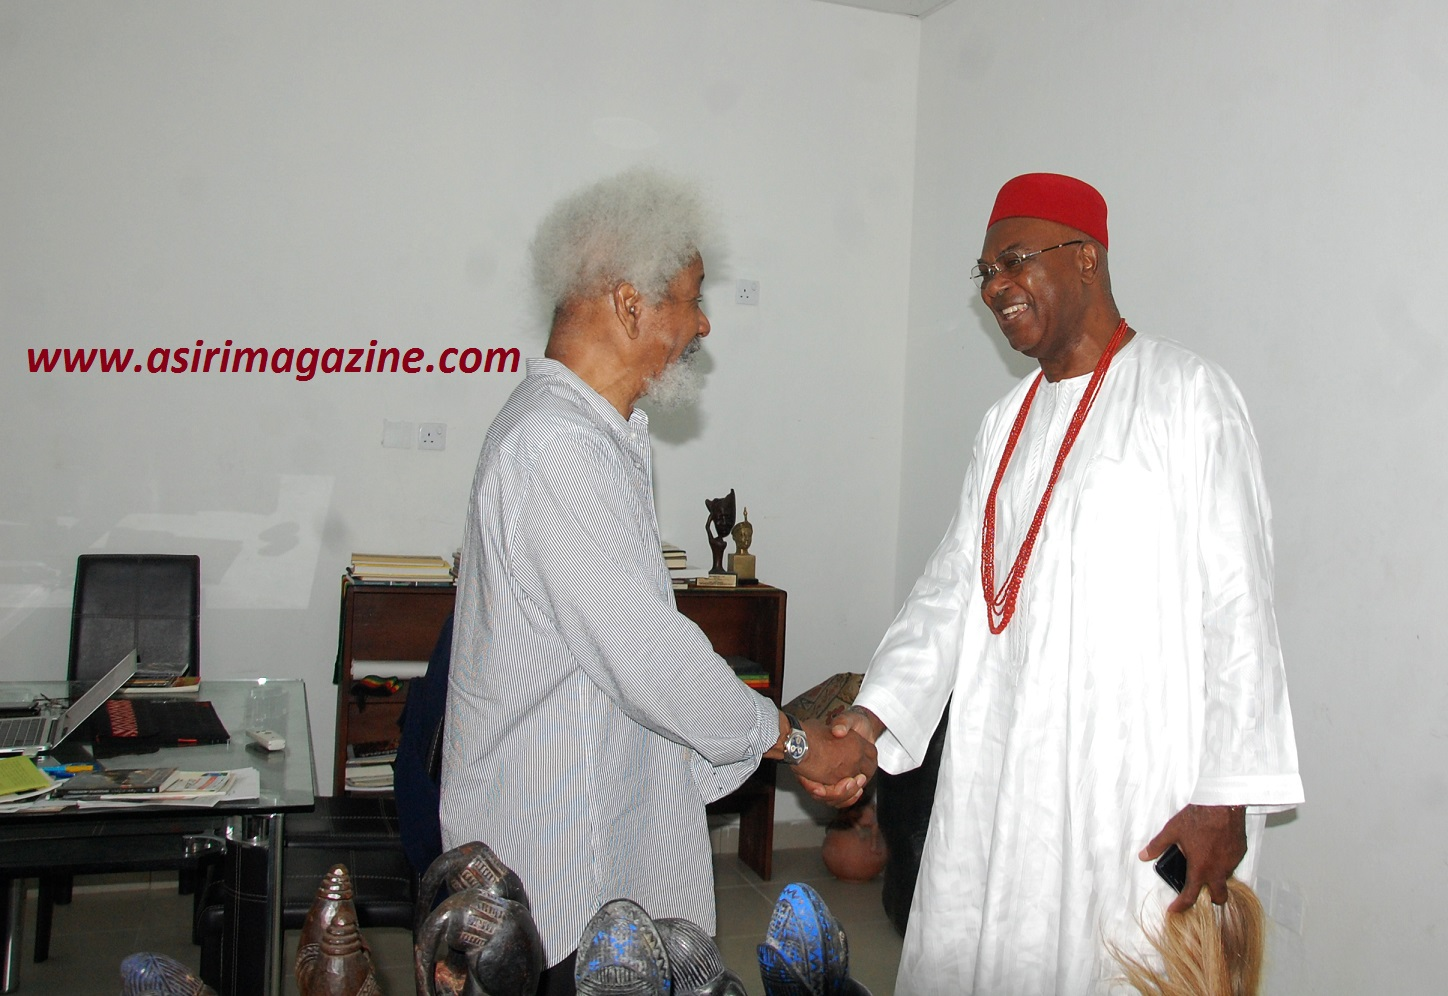 Prof Wole Soyinka and HRM Alfred Achebe (The Obi of Onitsha